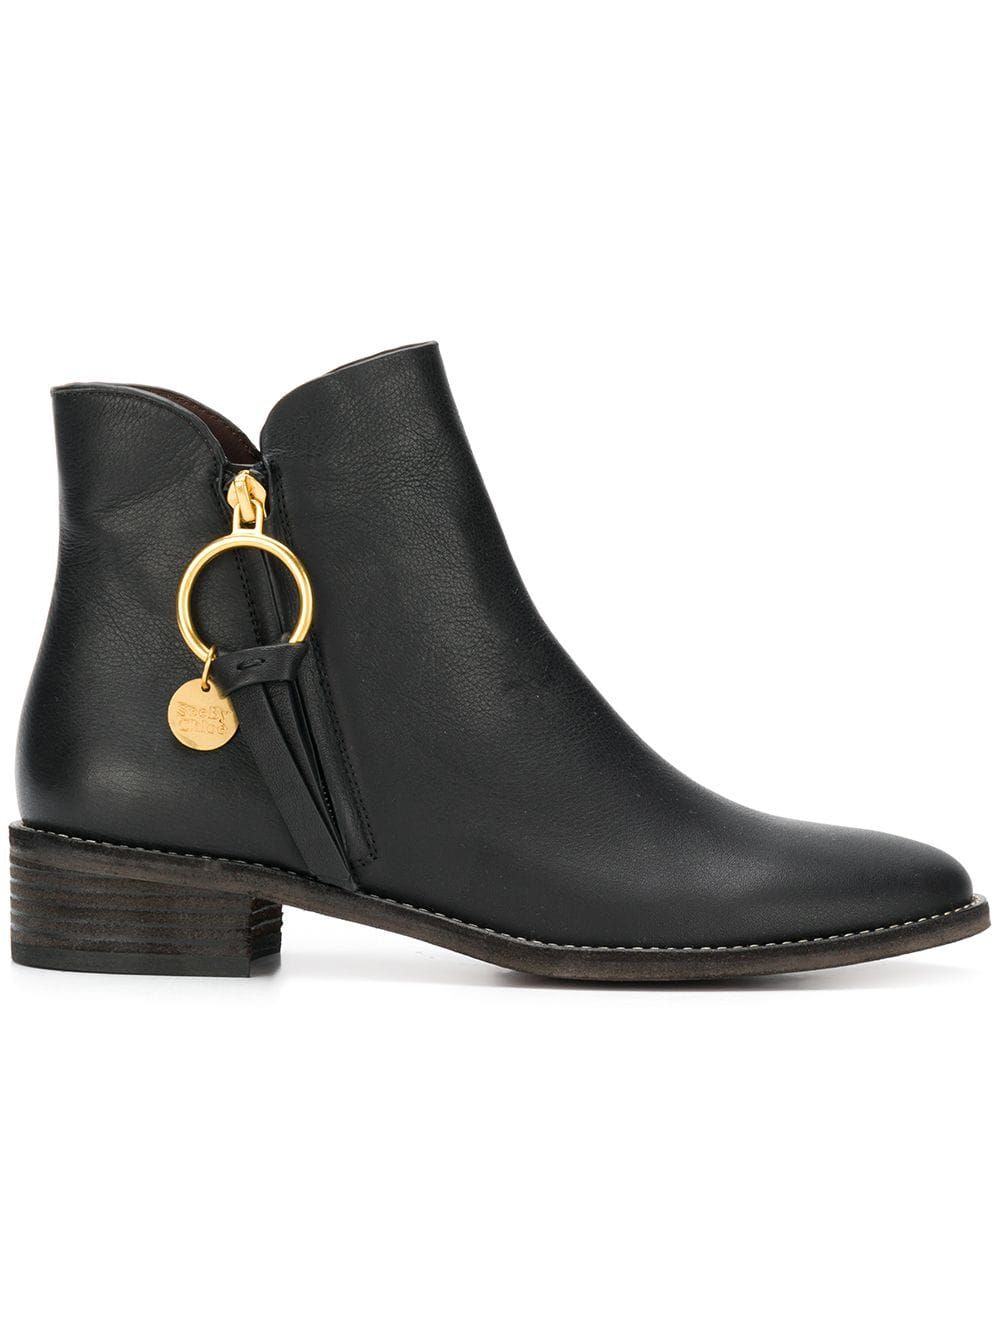 813399e93 See By Chloé Louise flat ankle boots - Black in 2019   Products ...